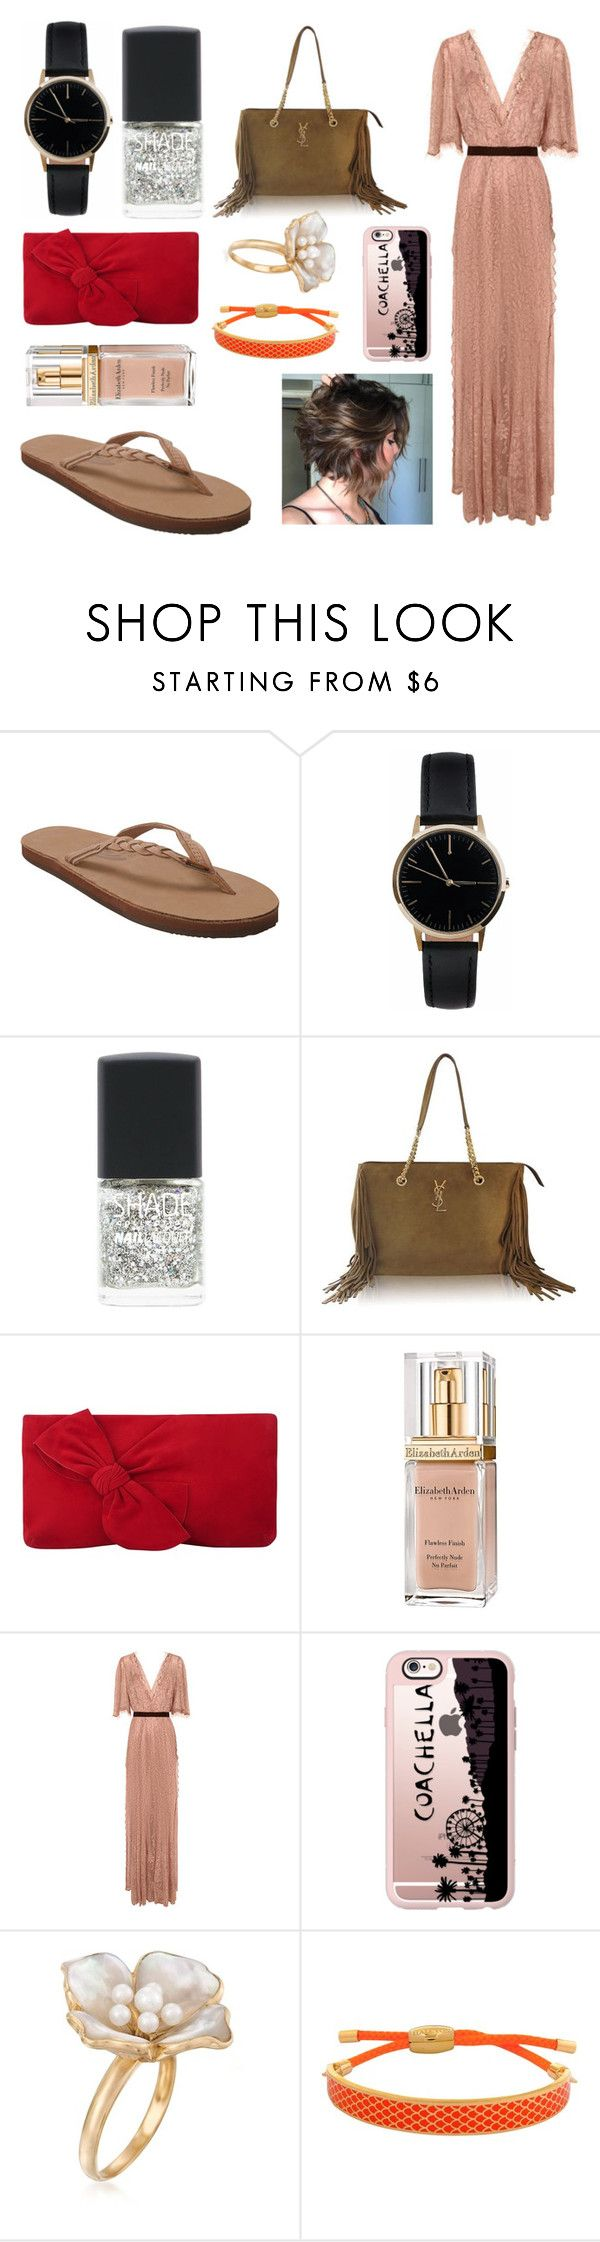 """OOTD"" by hailey-smith-13 ❤ liked on Polyvore featuring Rainbow Sandals, Freedom To Exist, Lane Bryant, Yves Saint Laurent, L.K.Bennett, Elizabeth Arden, Alice McCall, Casetify, Ross-Simons and Halcyon Days"